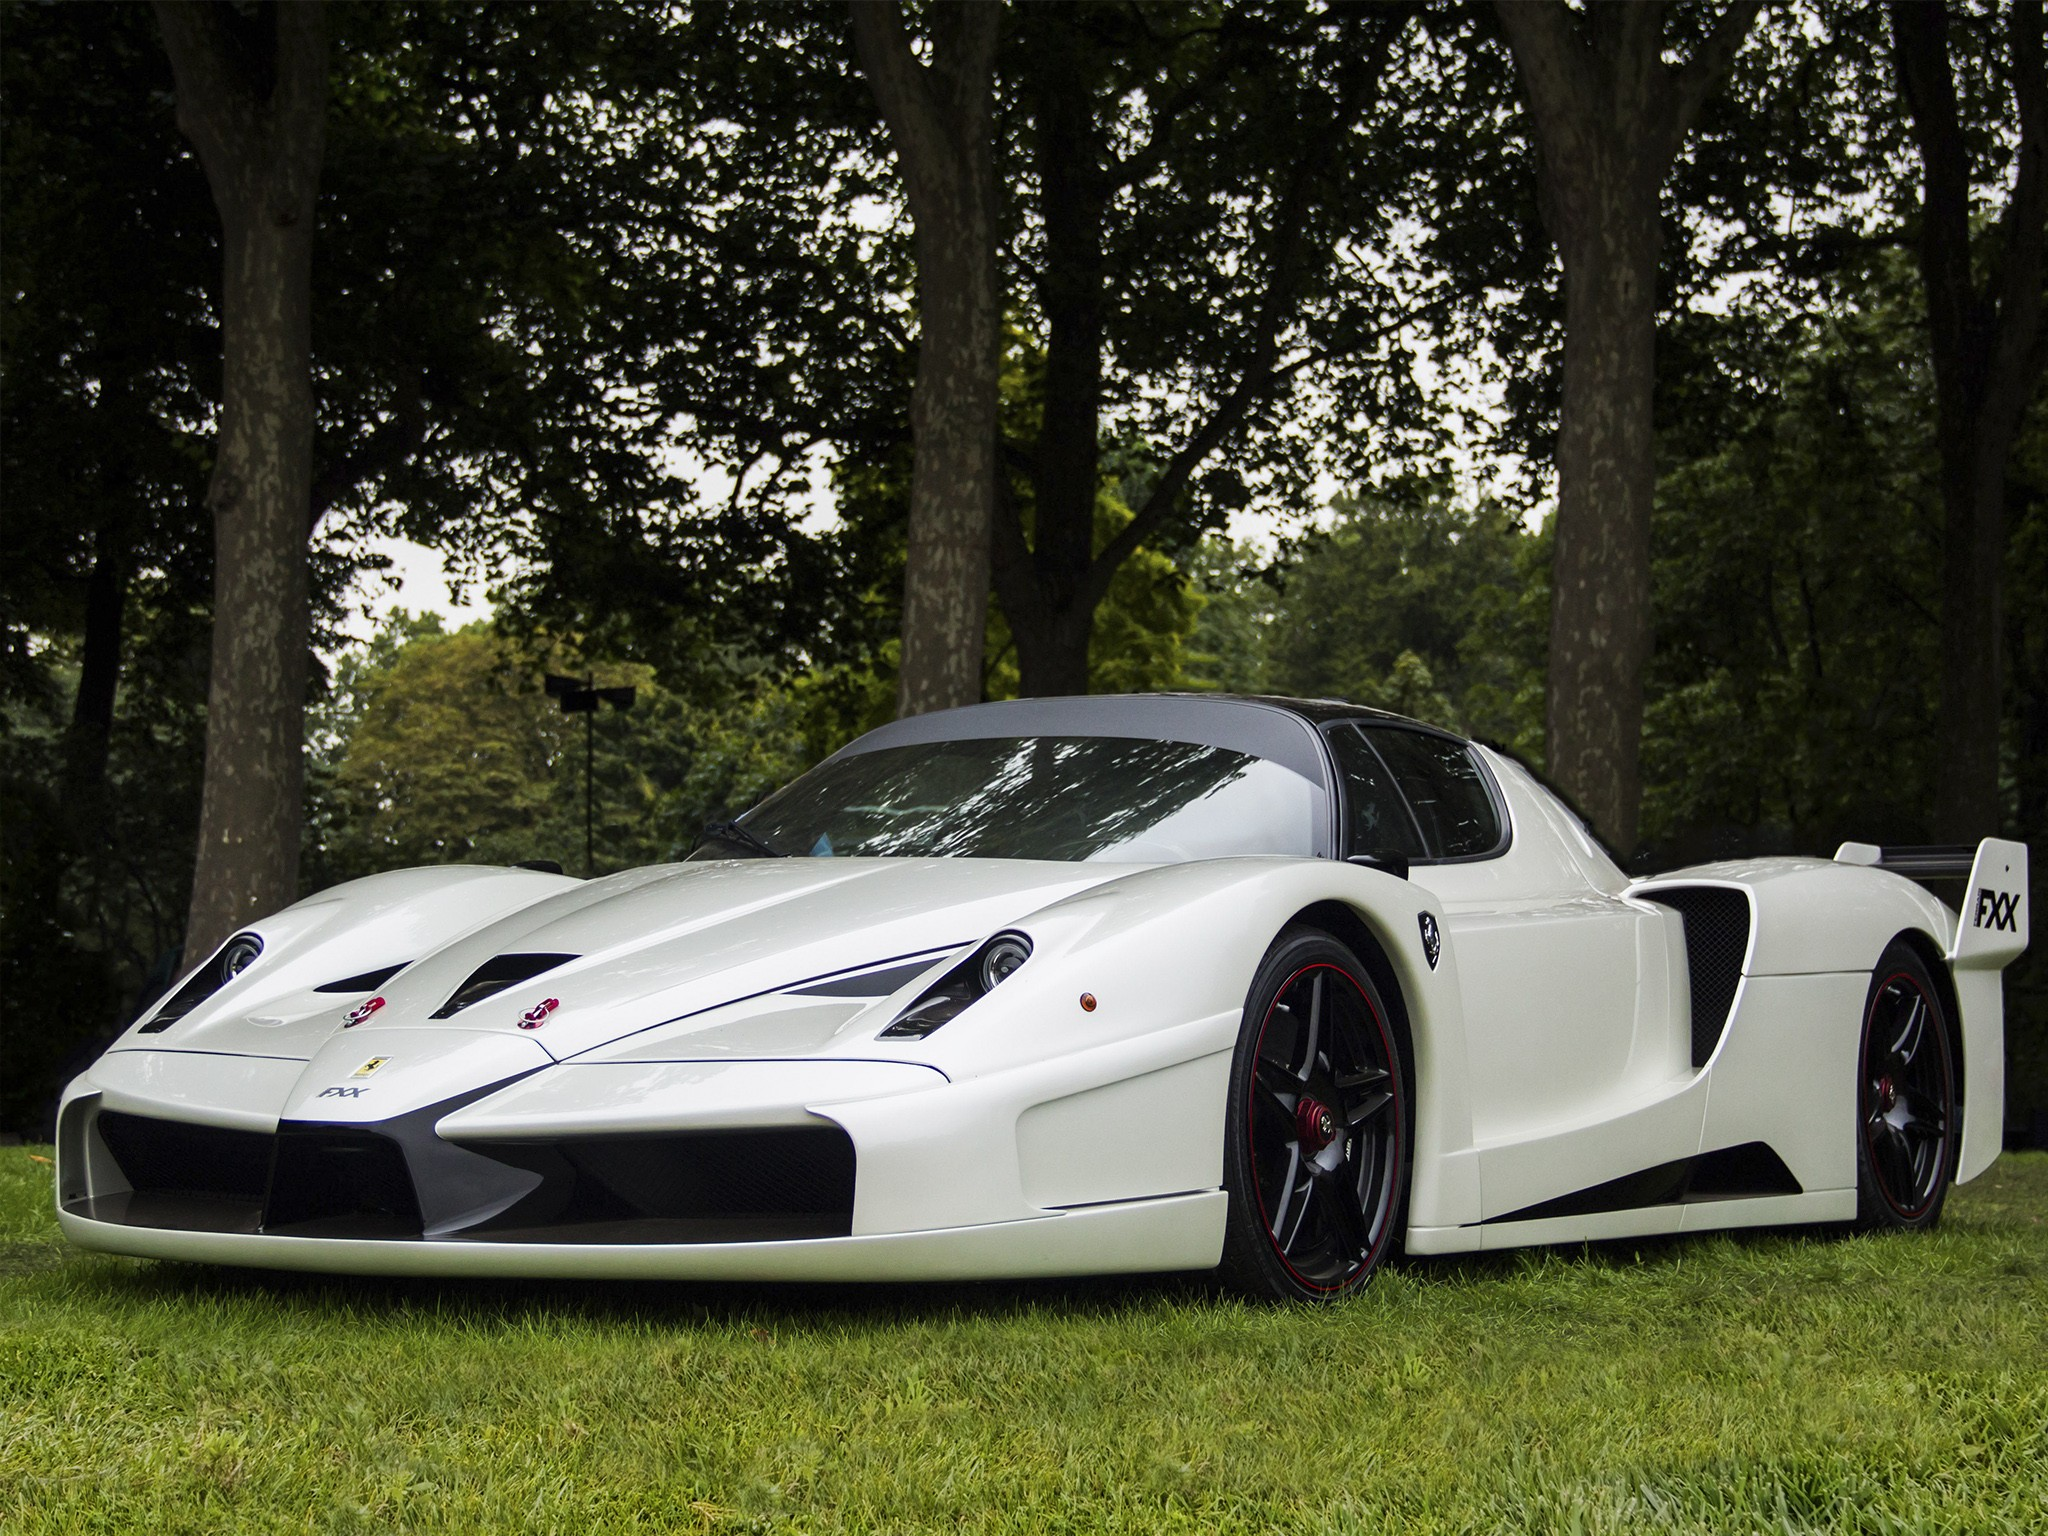 ferrari fxx 2005 2006 2007 autoevolution. Black Bedroom Furniture Sets. Home Design Ideas